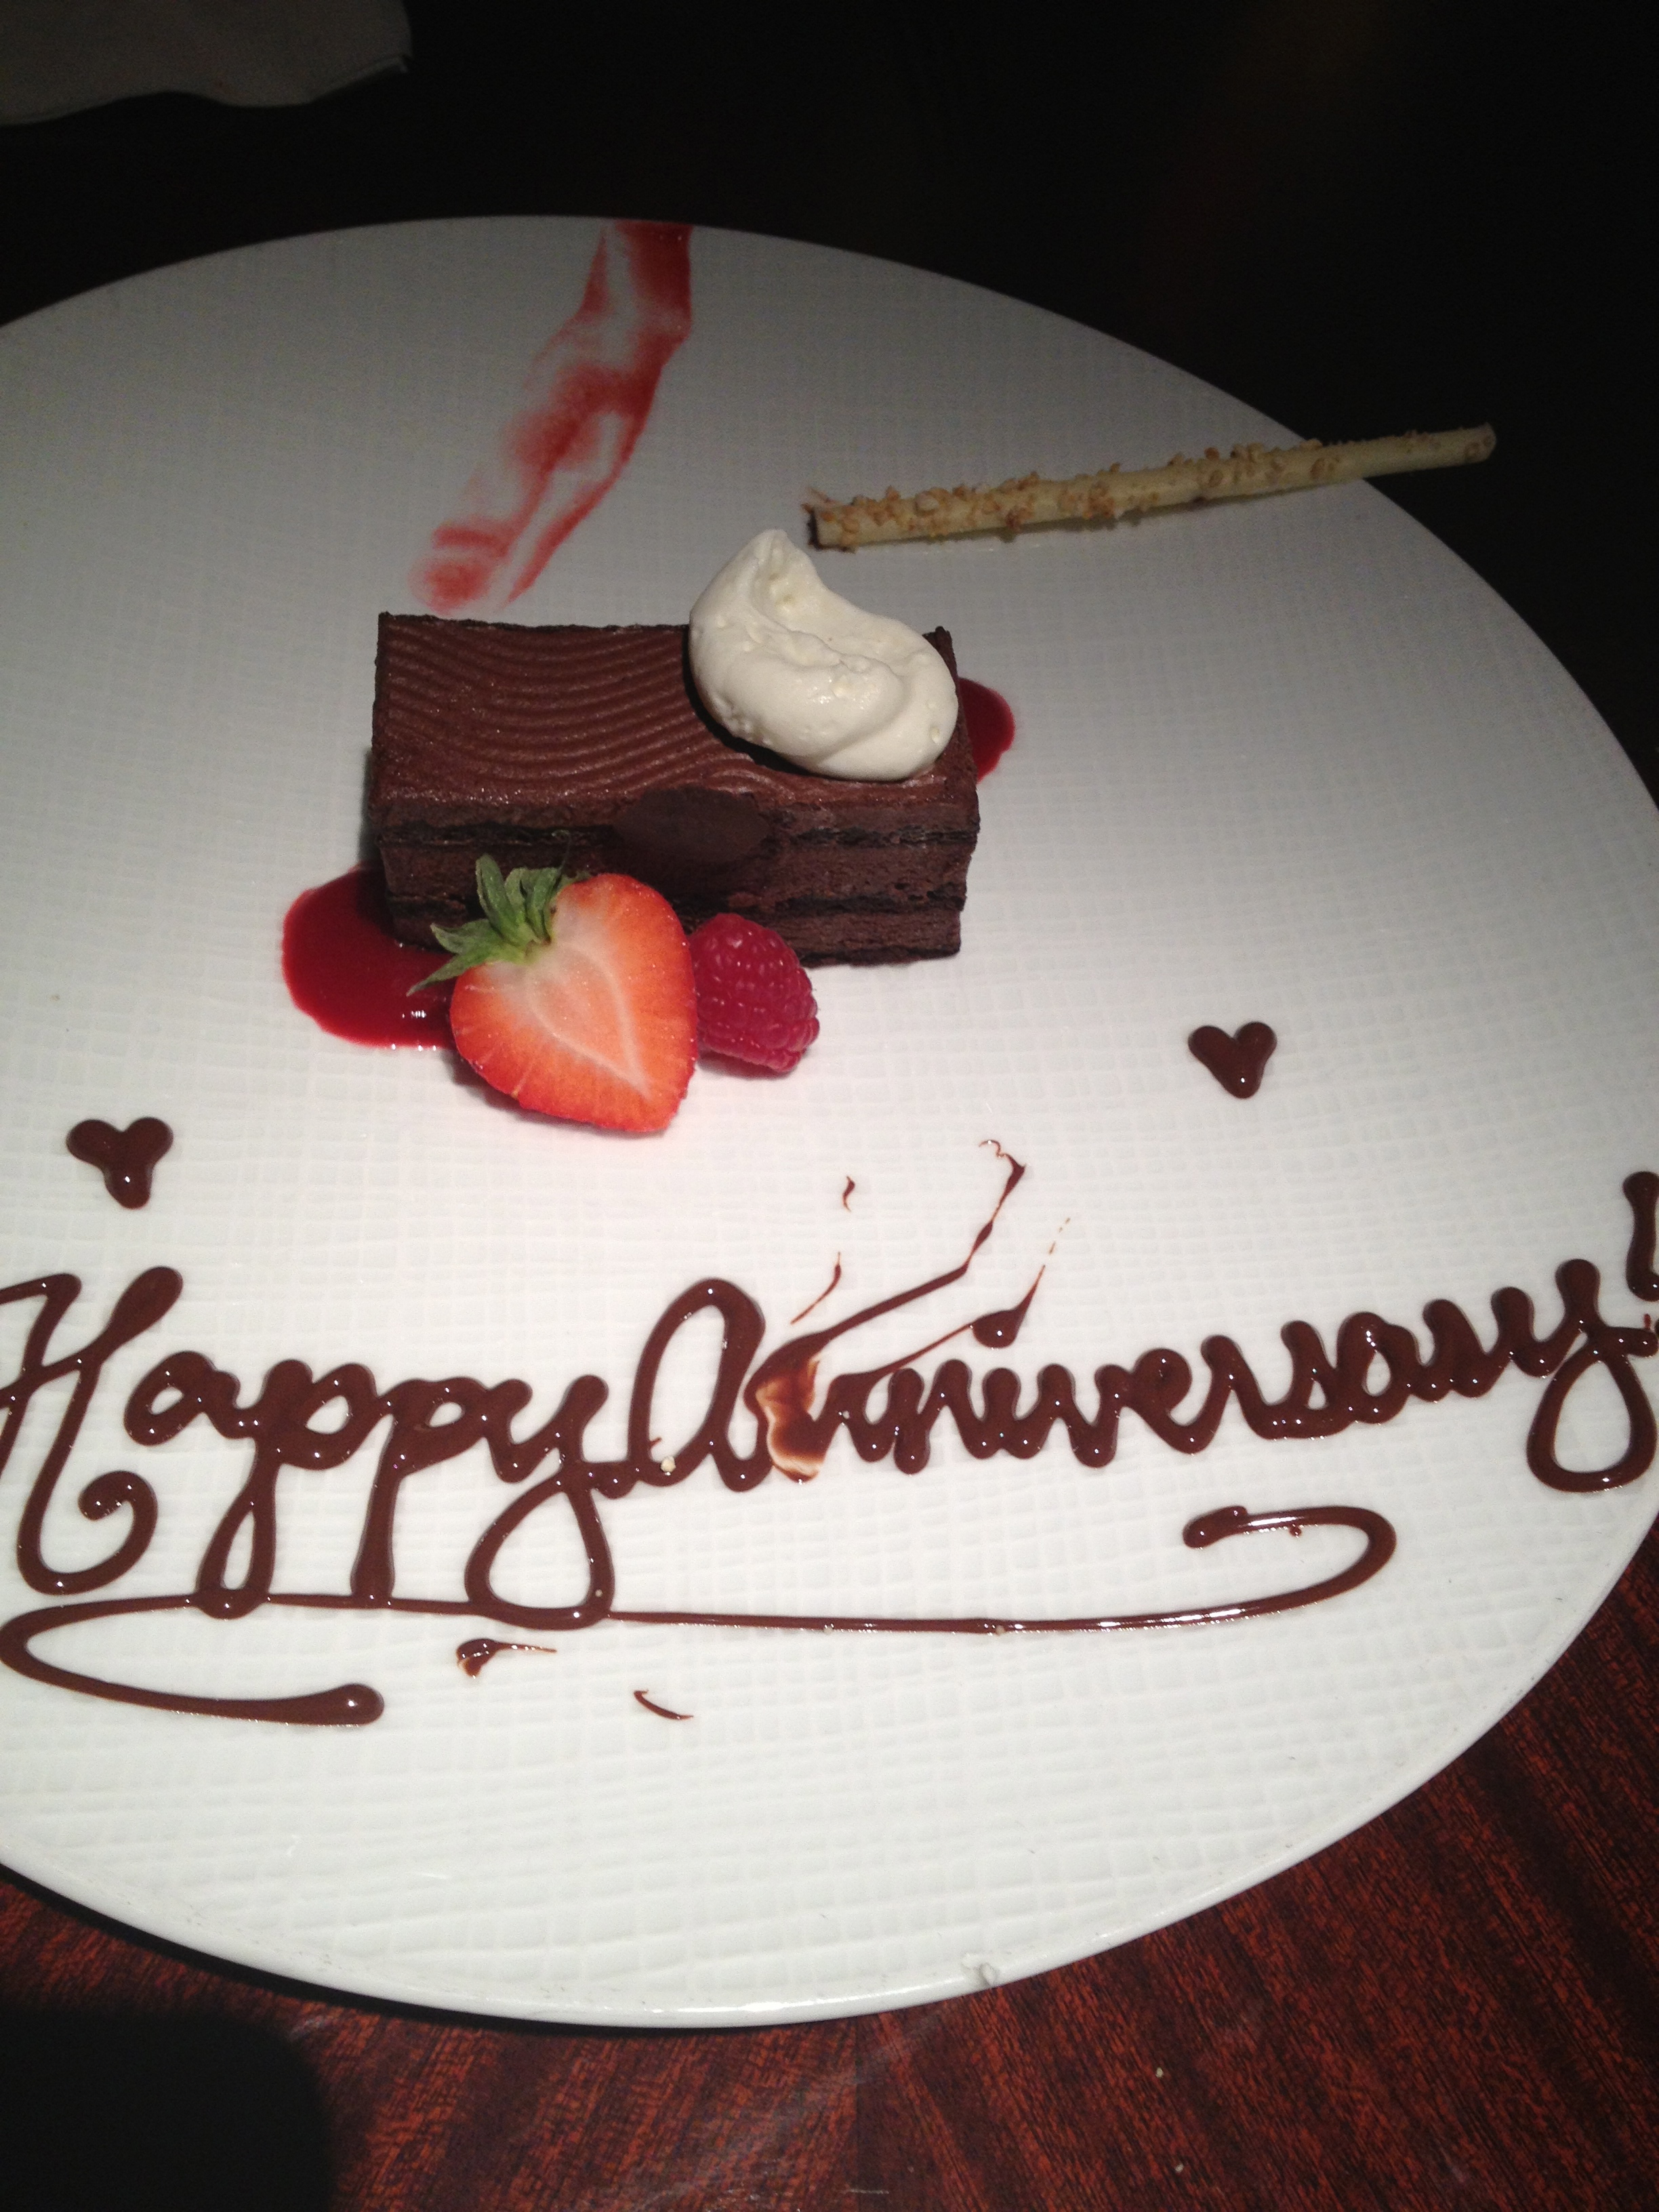 A beautiful Anniversary dessert!